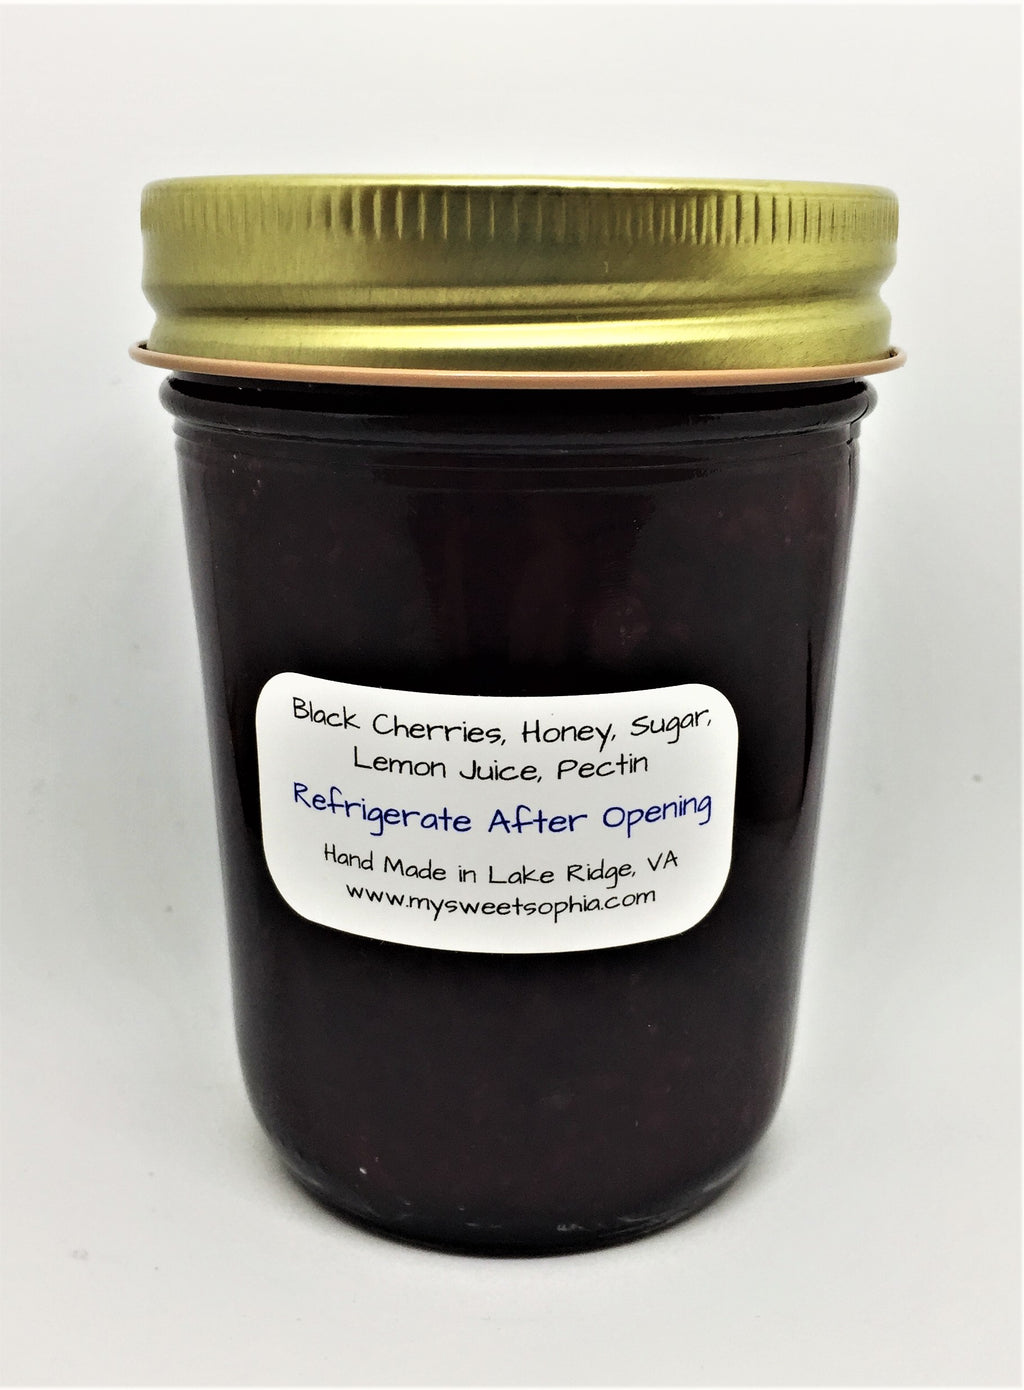 Glass jar with gold lid. Ingredients listed: Black Cherries, Honey, Sugar, Lemon Juice, Pectin.